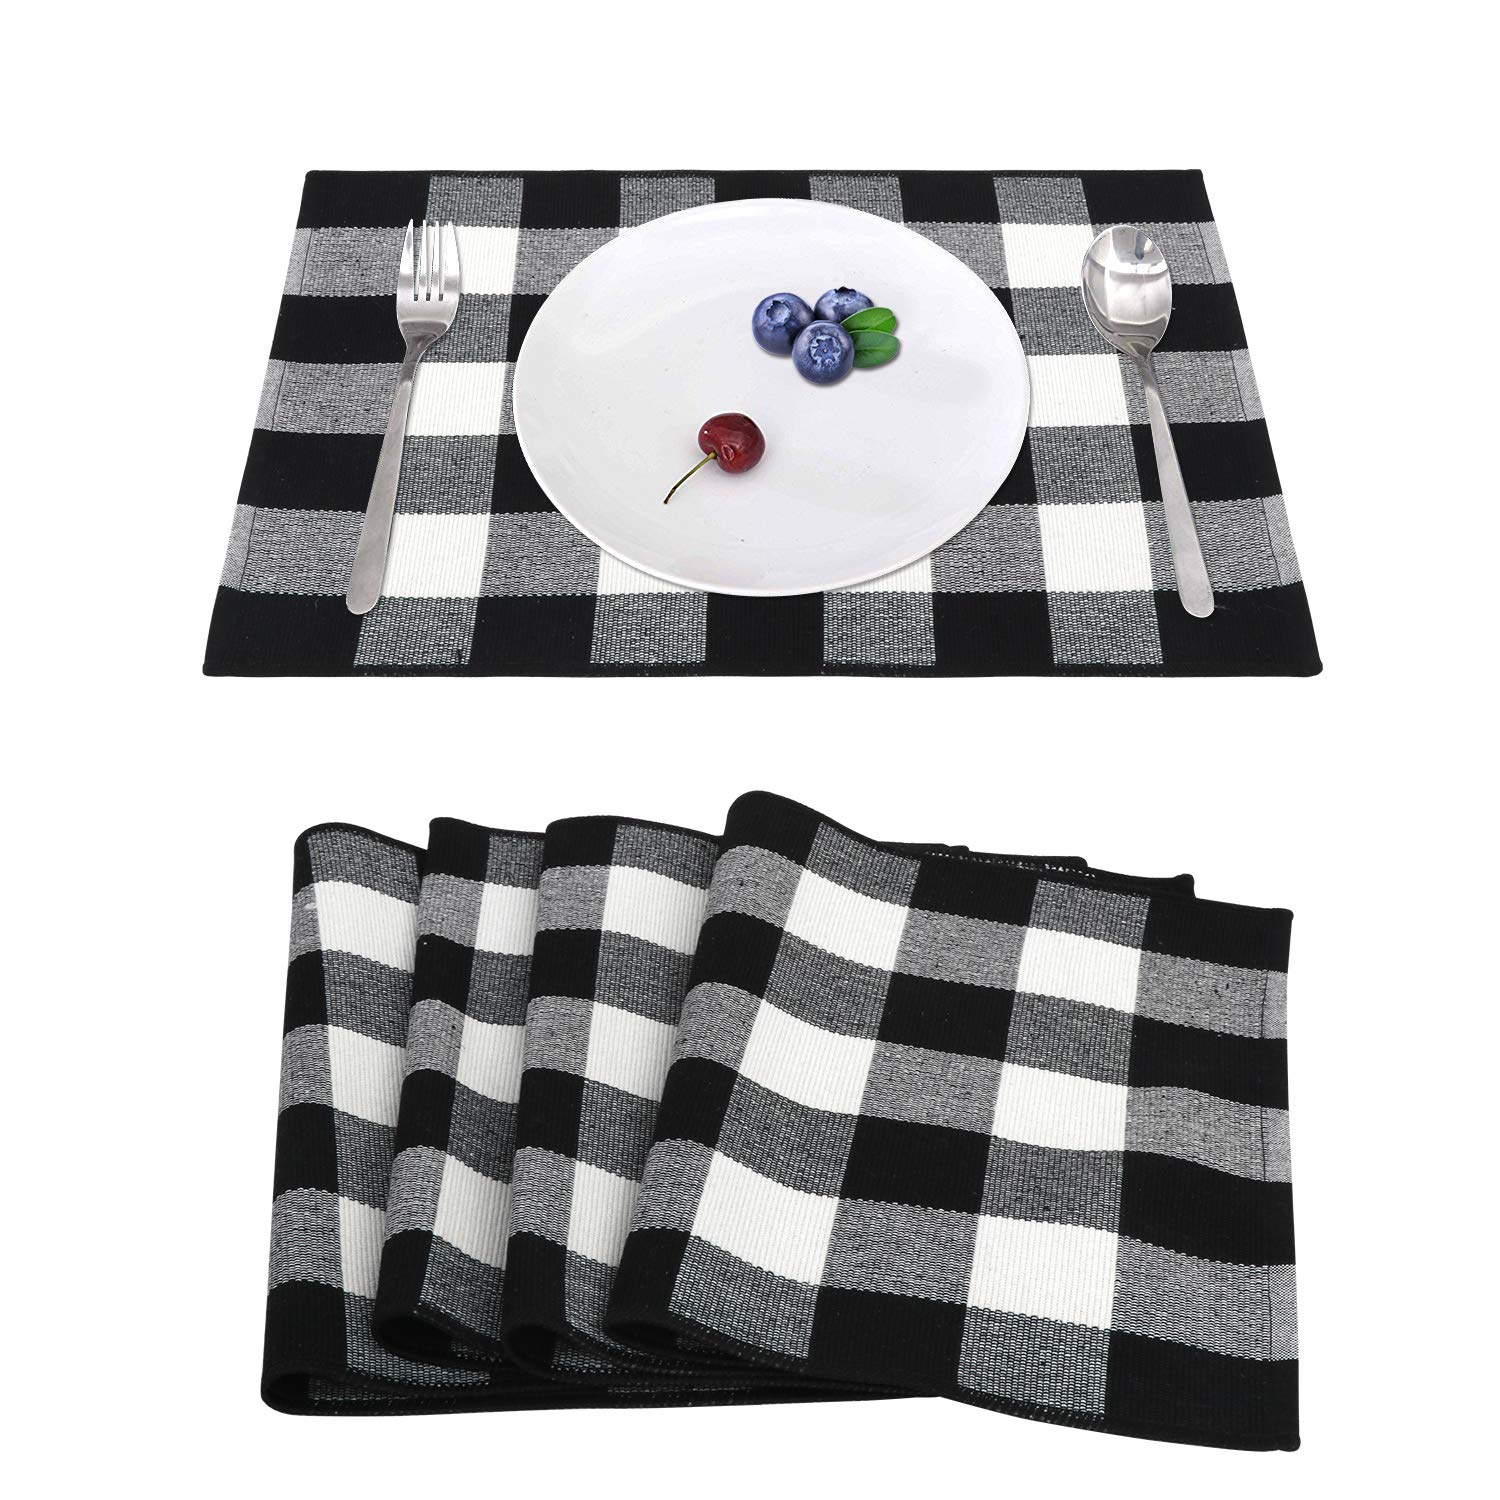 KIMODE 100% Cotton Buffalo Plaid Placemats Set of 4, Black/White Hand-Woven Checkered Heat Resistant Kitchen Table Mats, Farmhouse Dinning Table Linen Machine Washable Minimalist Home Decorative by KIMODE